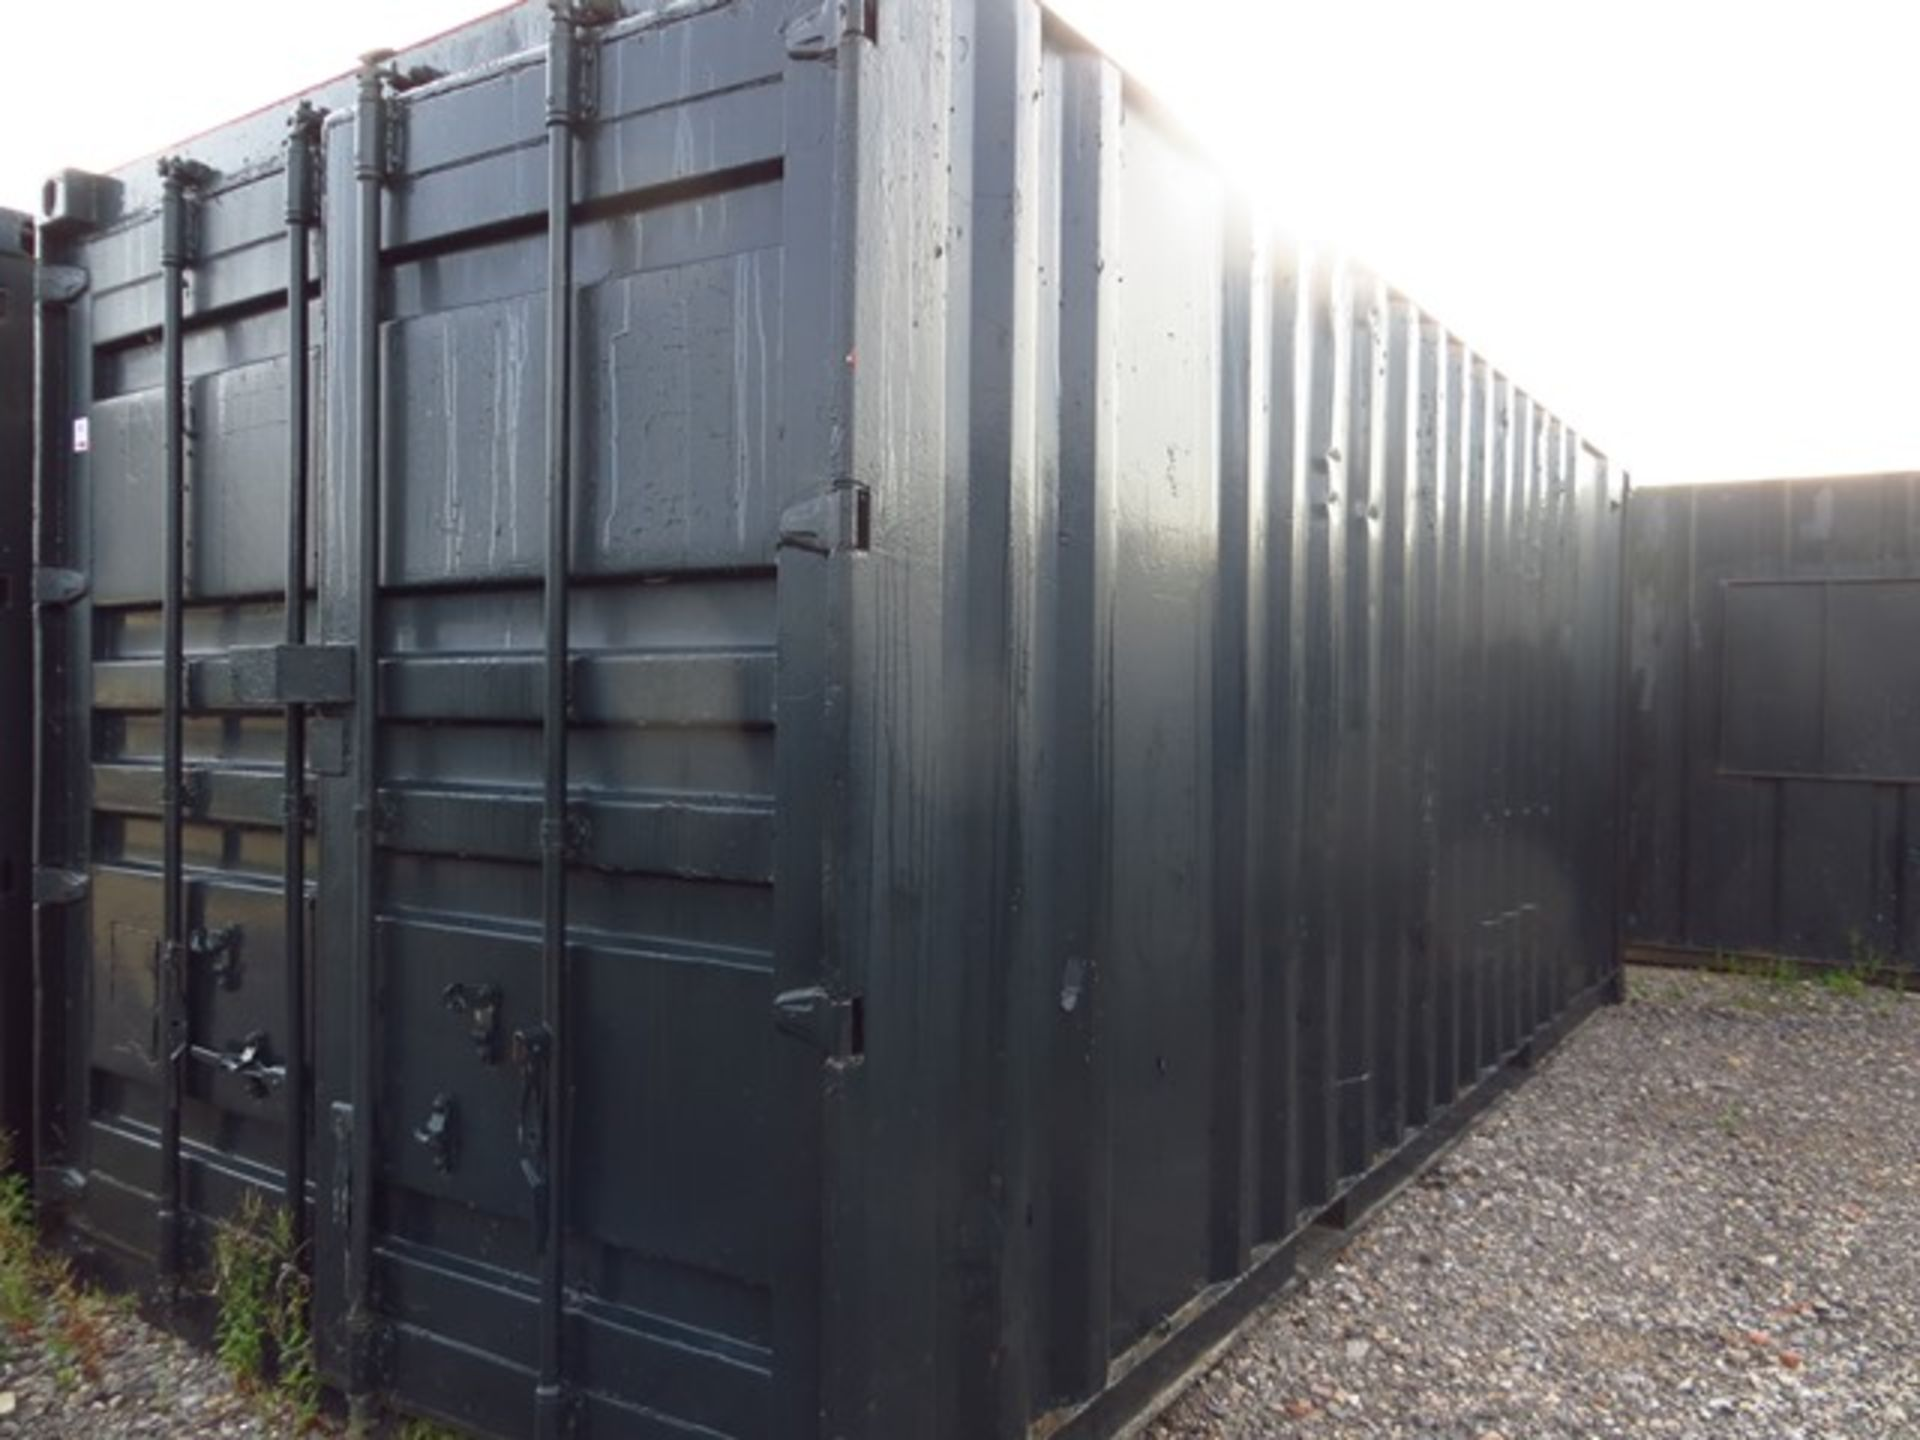 Lot 43 - 20' x 9' Steel Shipping Container c/w Various Office Furniture as Lotted